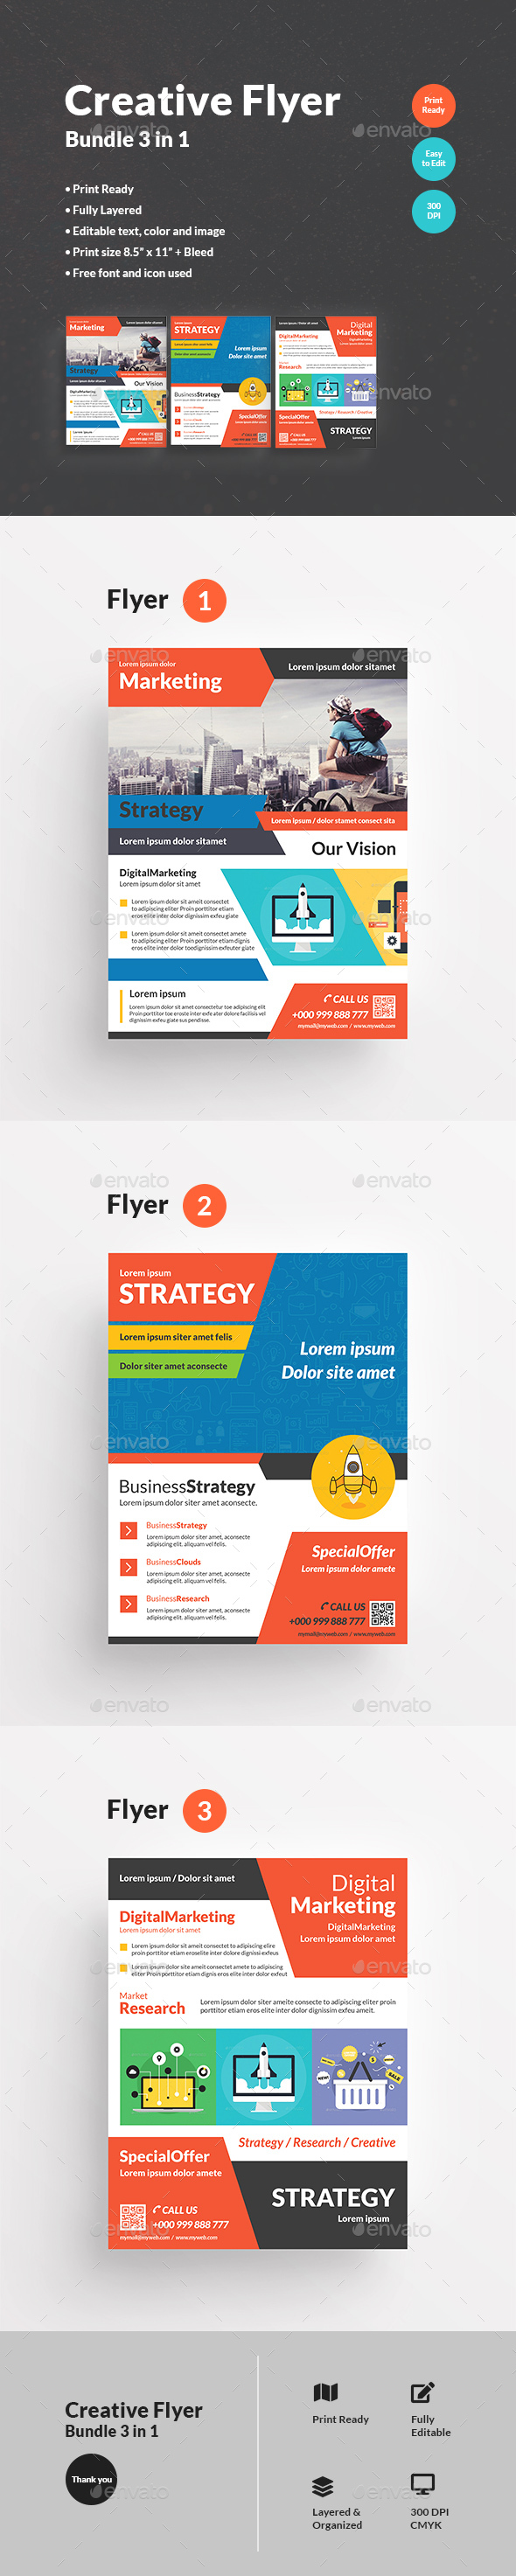 Flyers PSD – Inventive Flyer Bundle 3 in 1 – Download